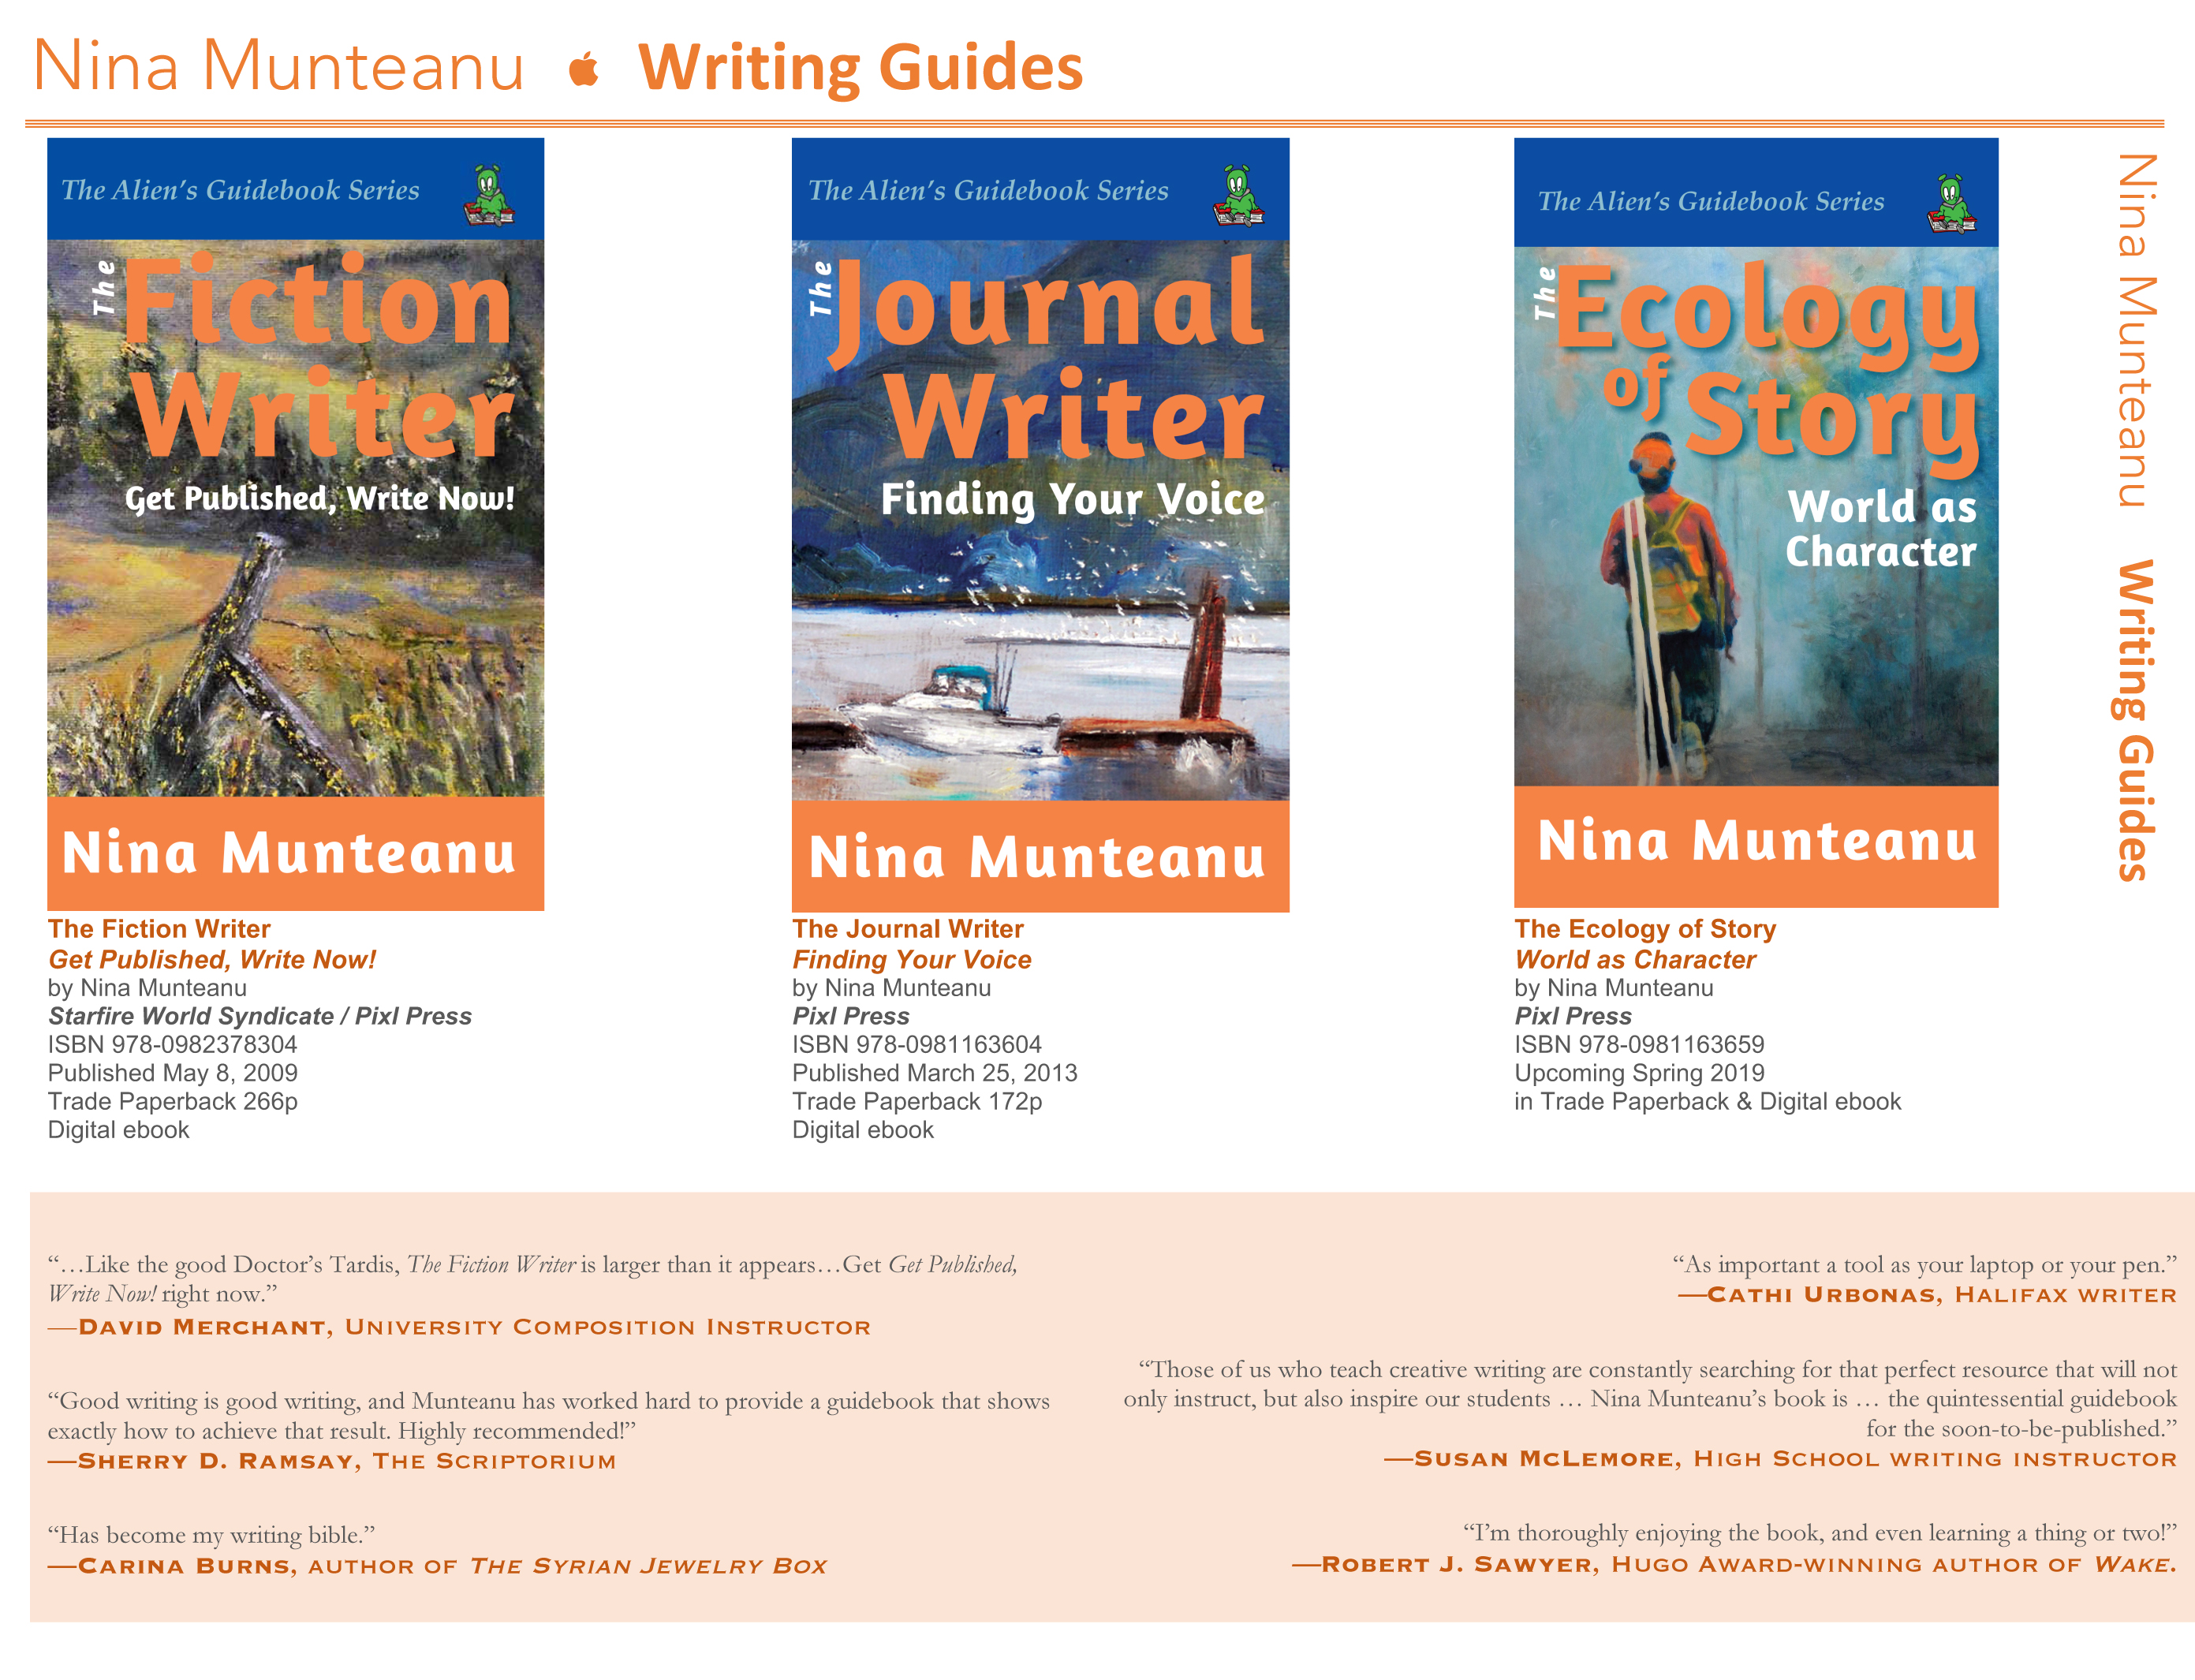 Microsoft Word - Three Writing Guides.docx